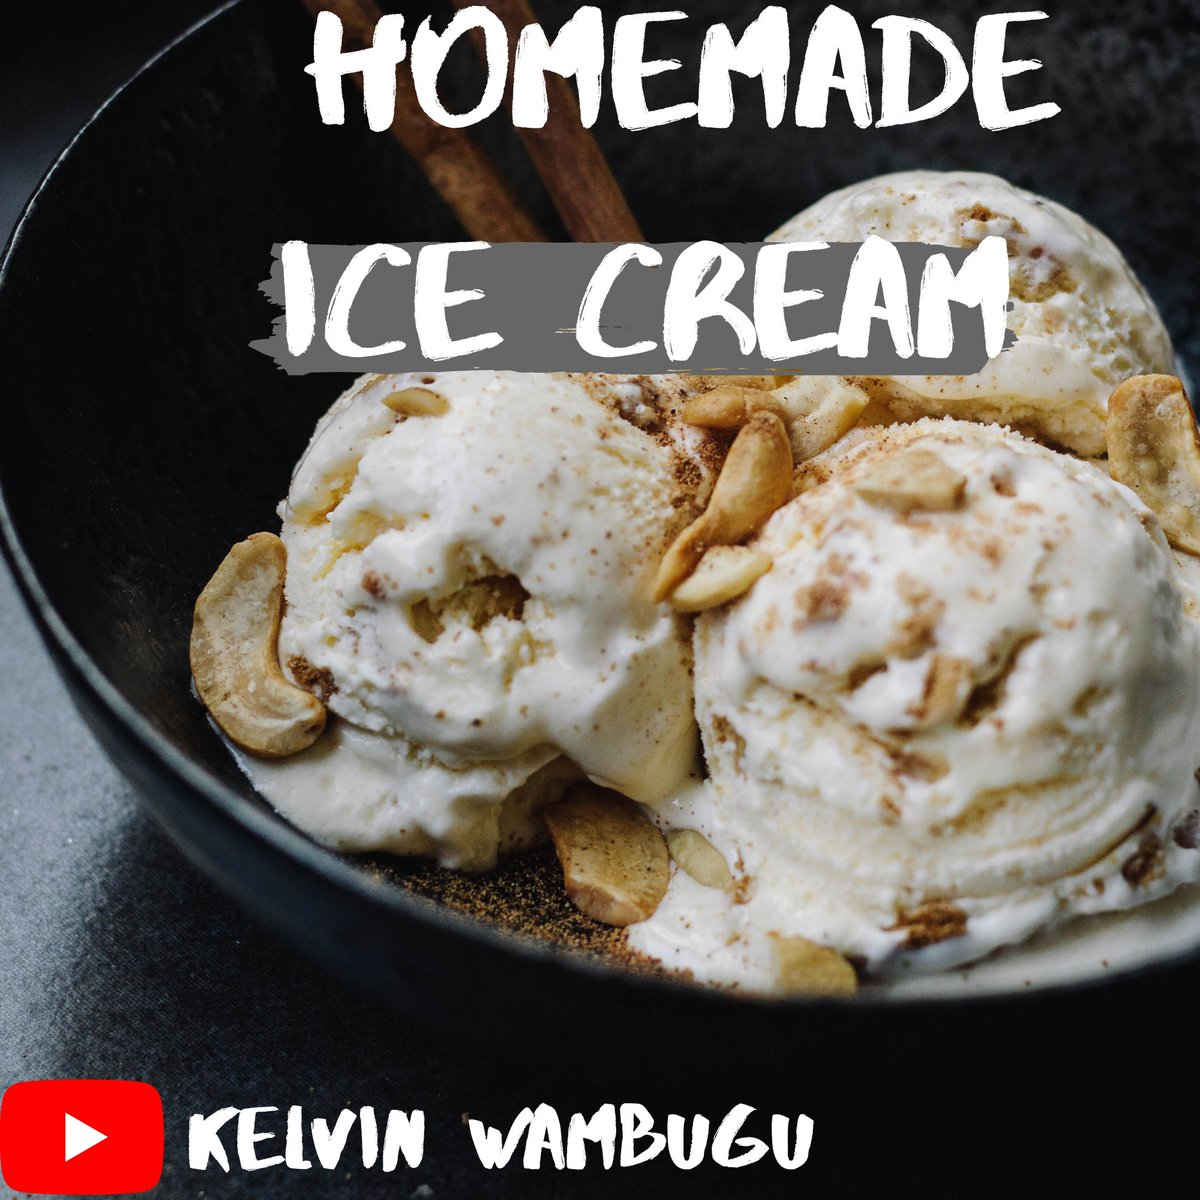 Good morning beautiful world. Hope this video finds you well. Ice cream always makes our days brighter 🍧 #icecream #delicious #homemadefood #howtomakeicecream #yummy #IceCreamMan #easyrecipes #YouTuber https://t.co/0jstnruzTH https://t.co/YfCxc2Xdh2